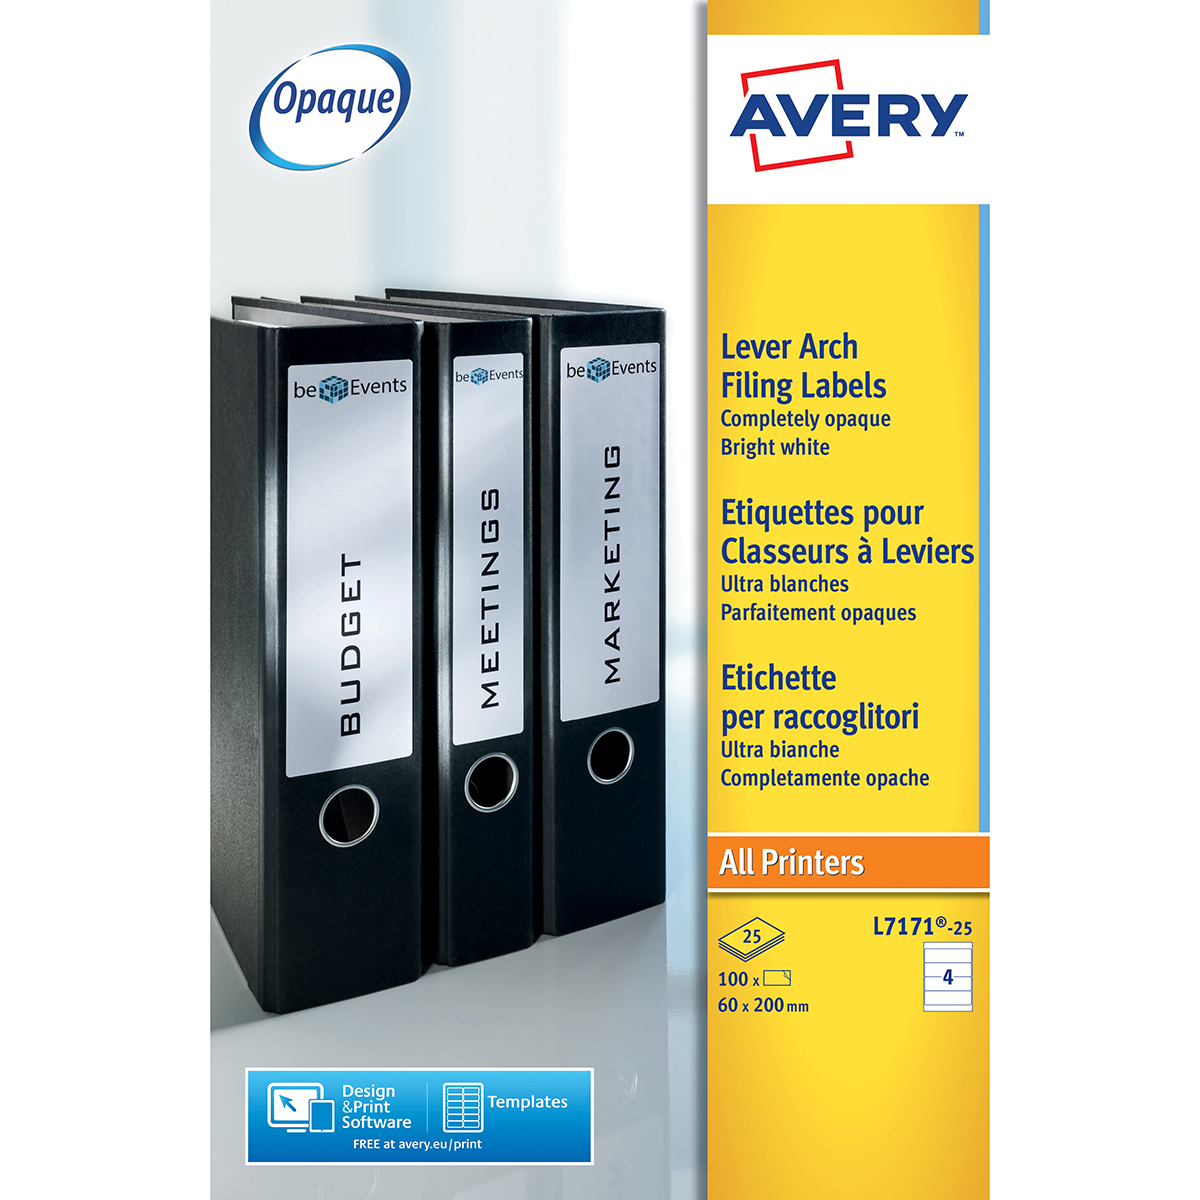 Avery L7171-25 Filing Labels 25 sheets - 4 Labels per Sheet